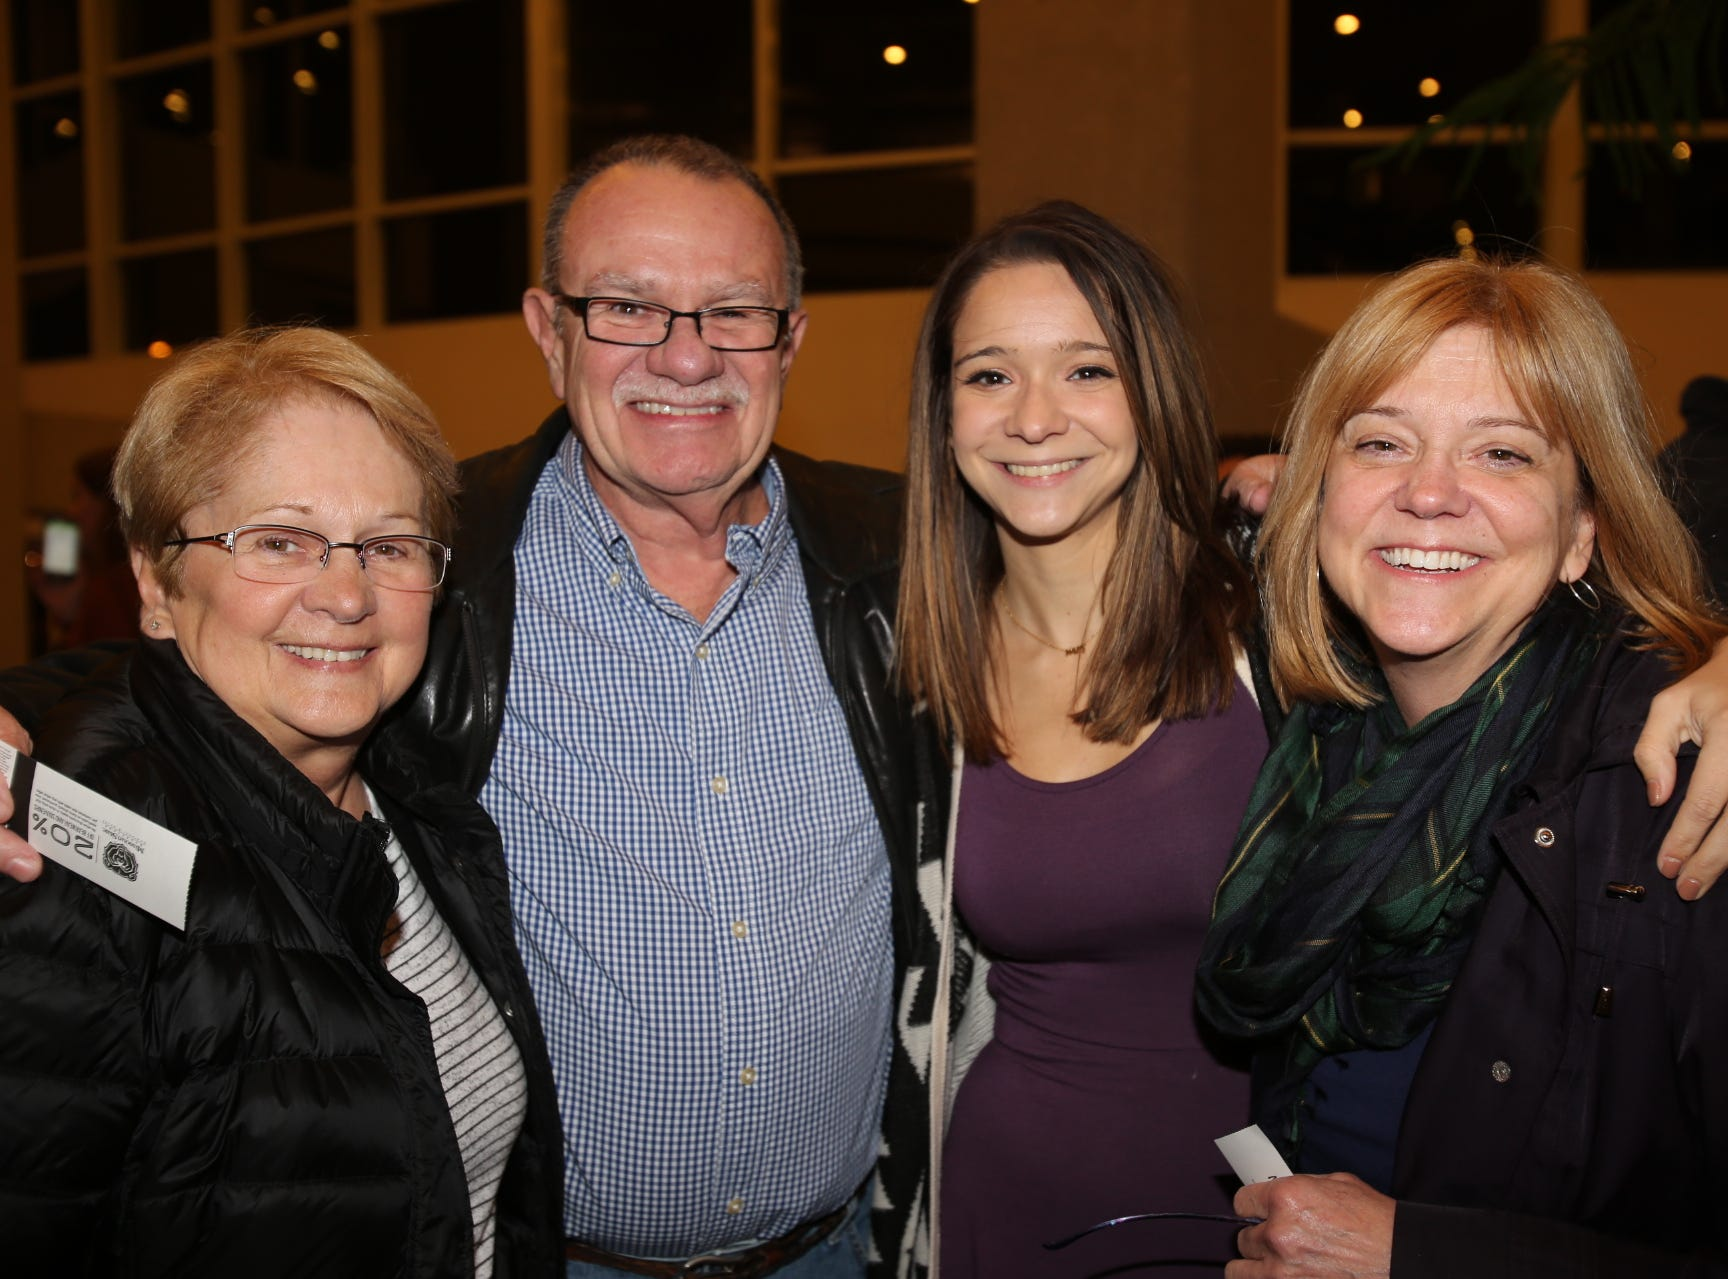 Debbie and Mike Greene, Liz Ruggeri, and Stephanie Spradling